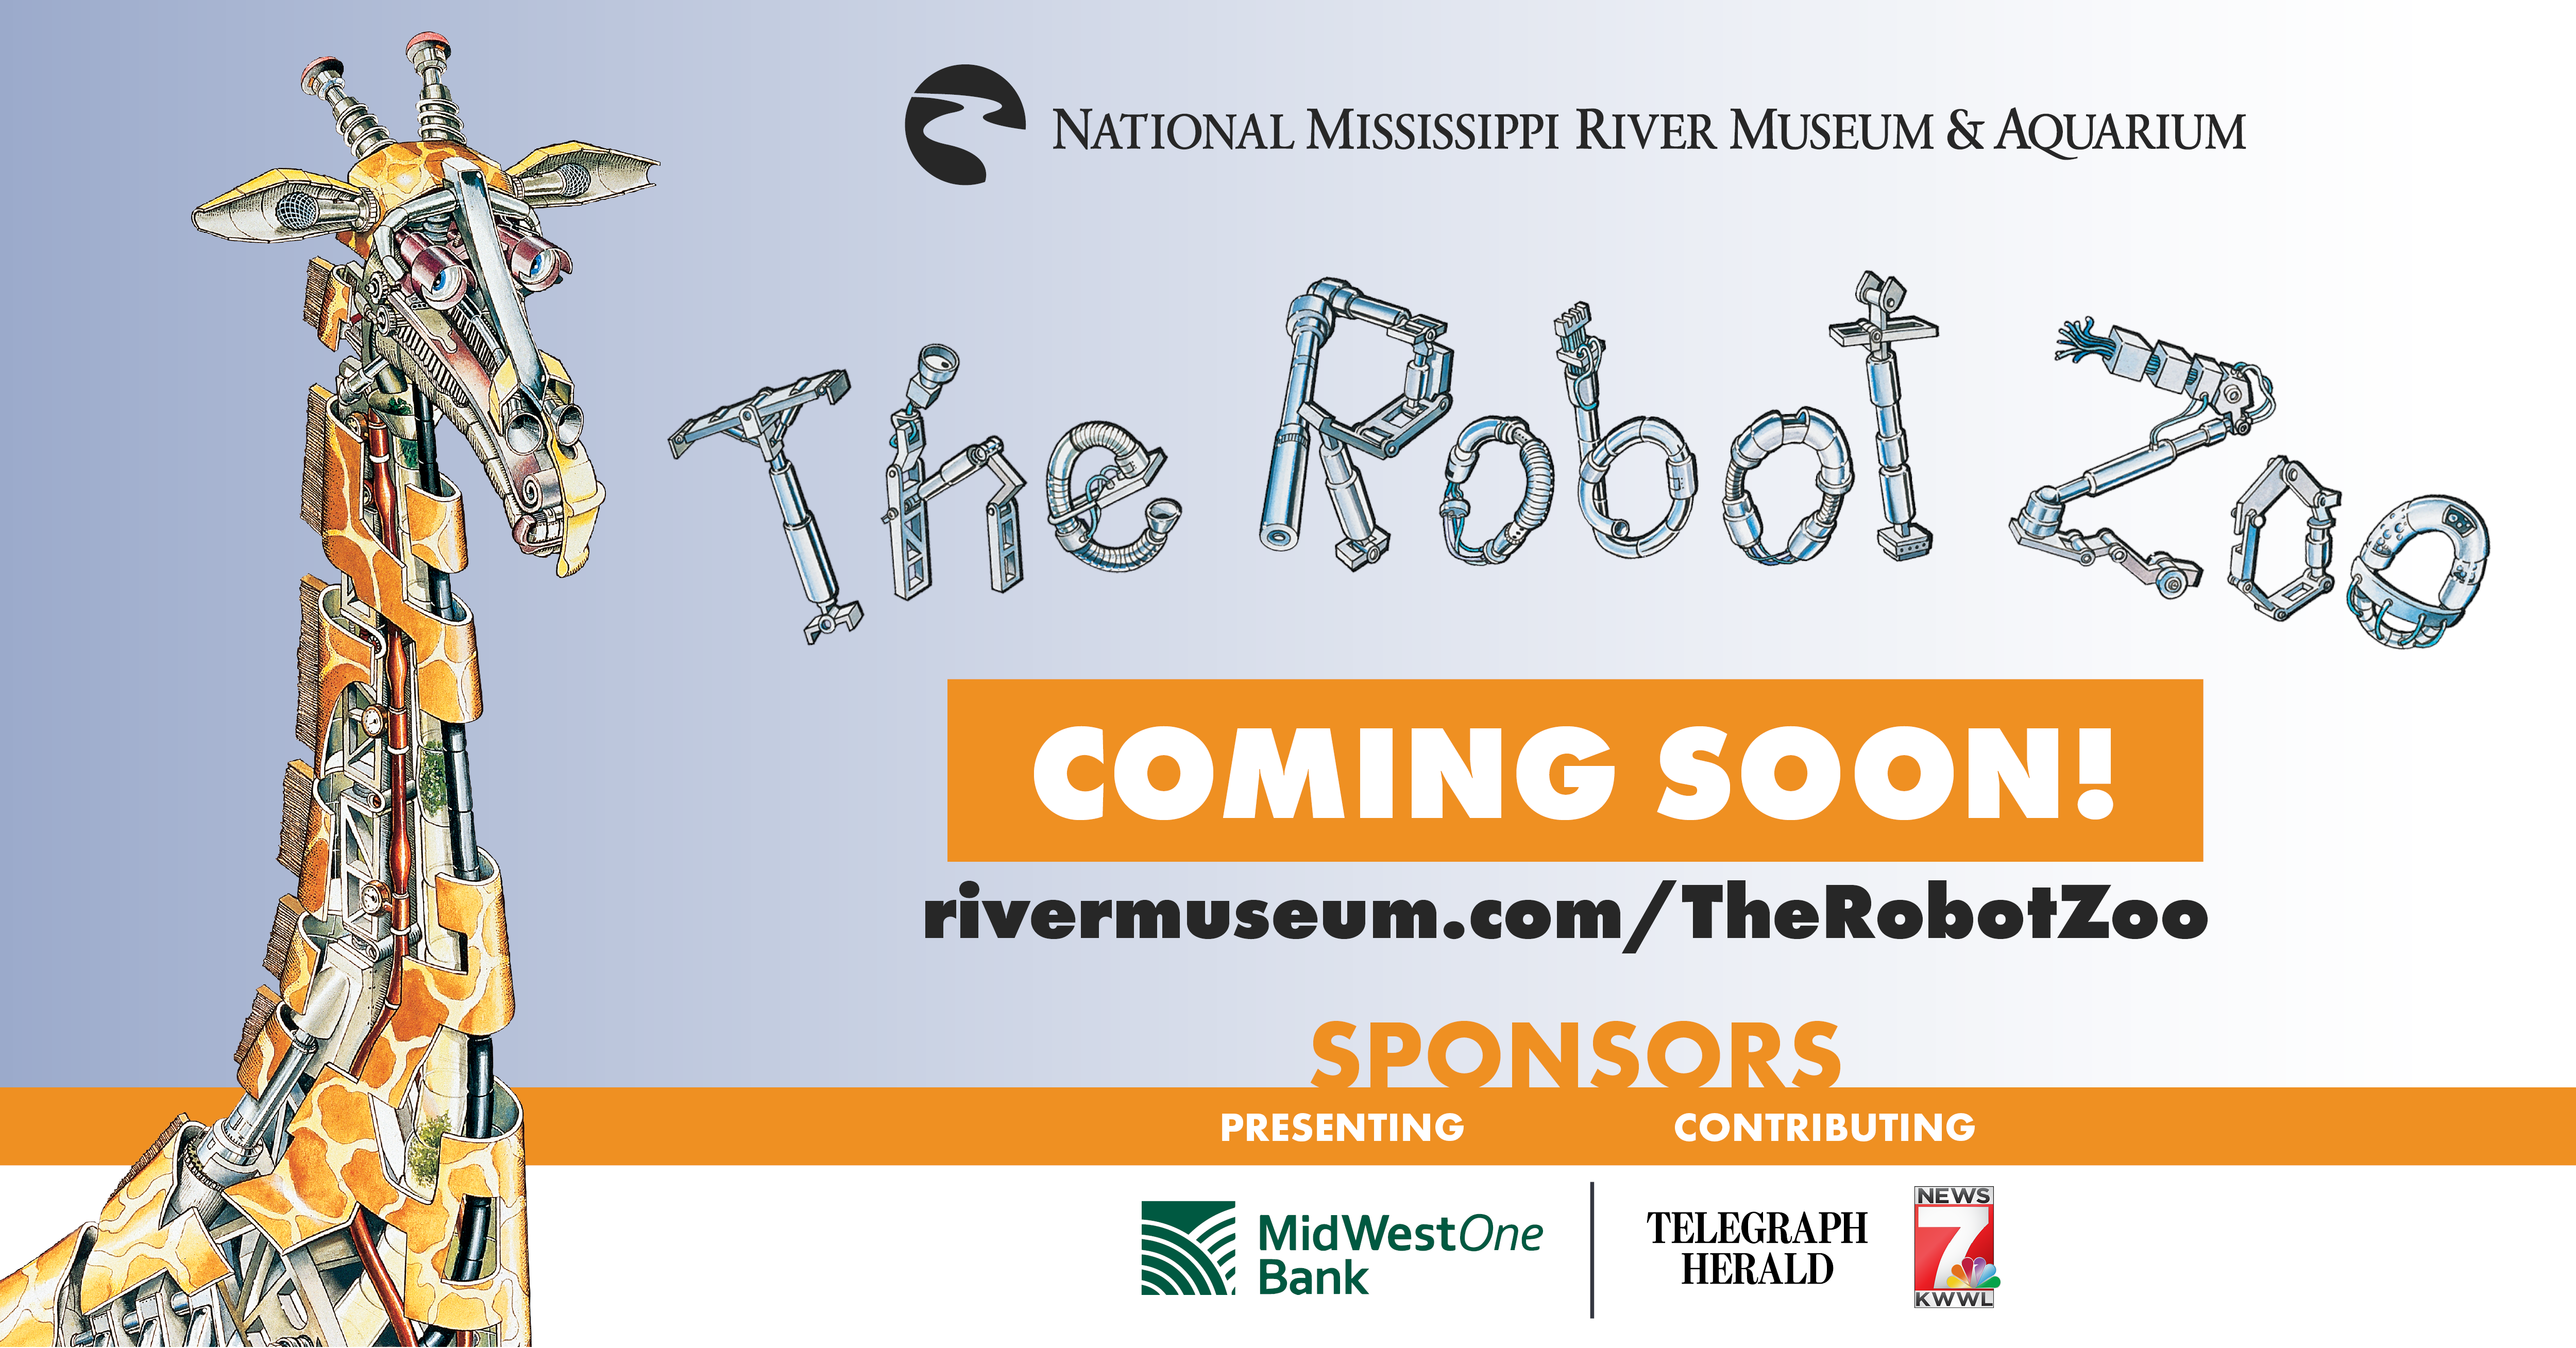 The Robot Zoo exhibit is coming soon to the River Museum.